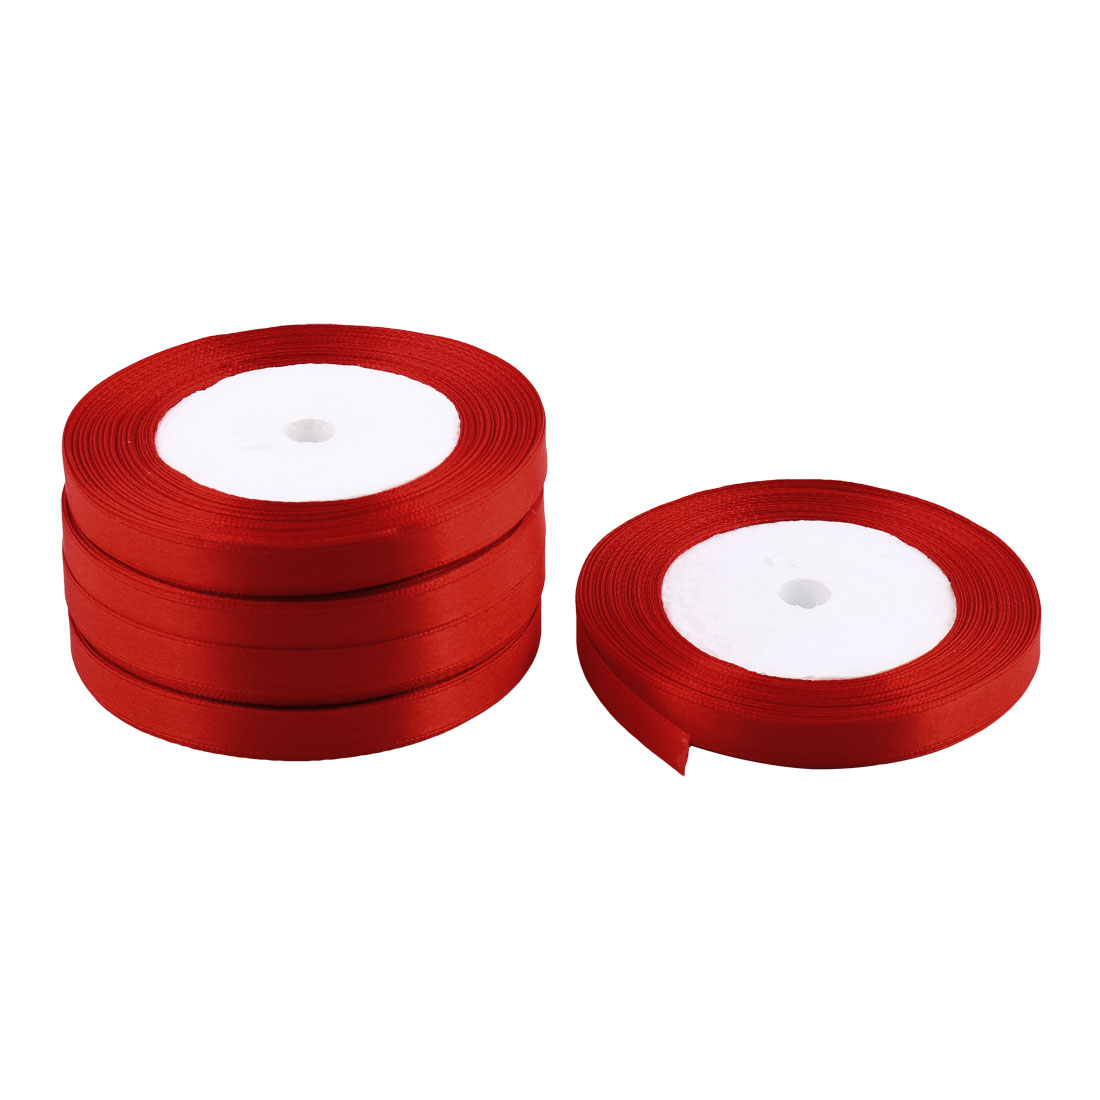 Room Decoration Polyester Gift Packing Crafting Satin Ribbon Roll Tape Red 5pcs